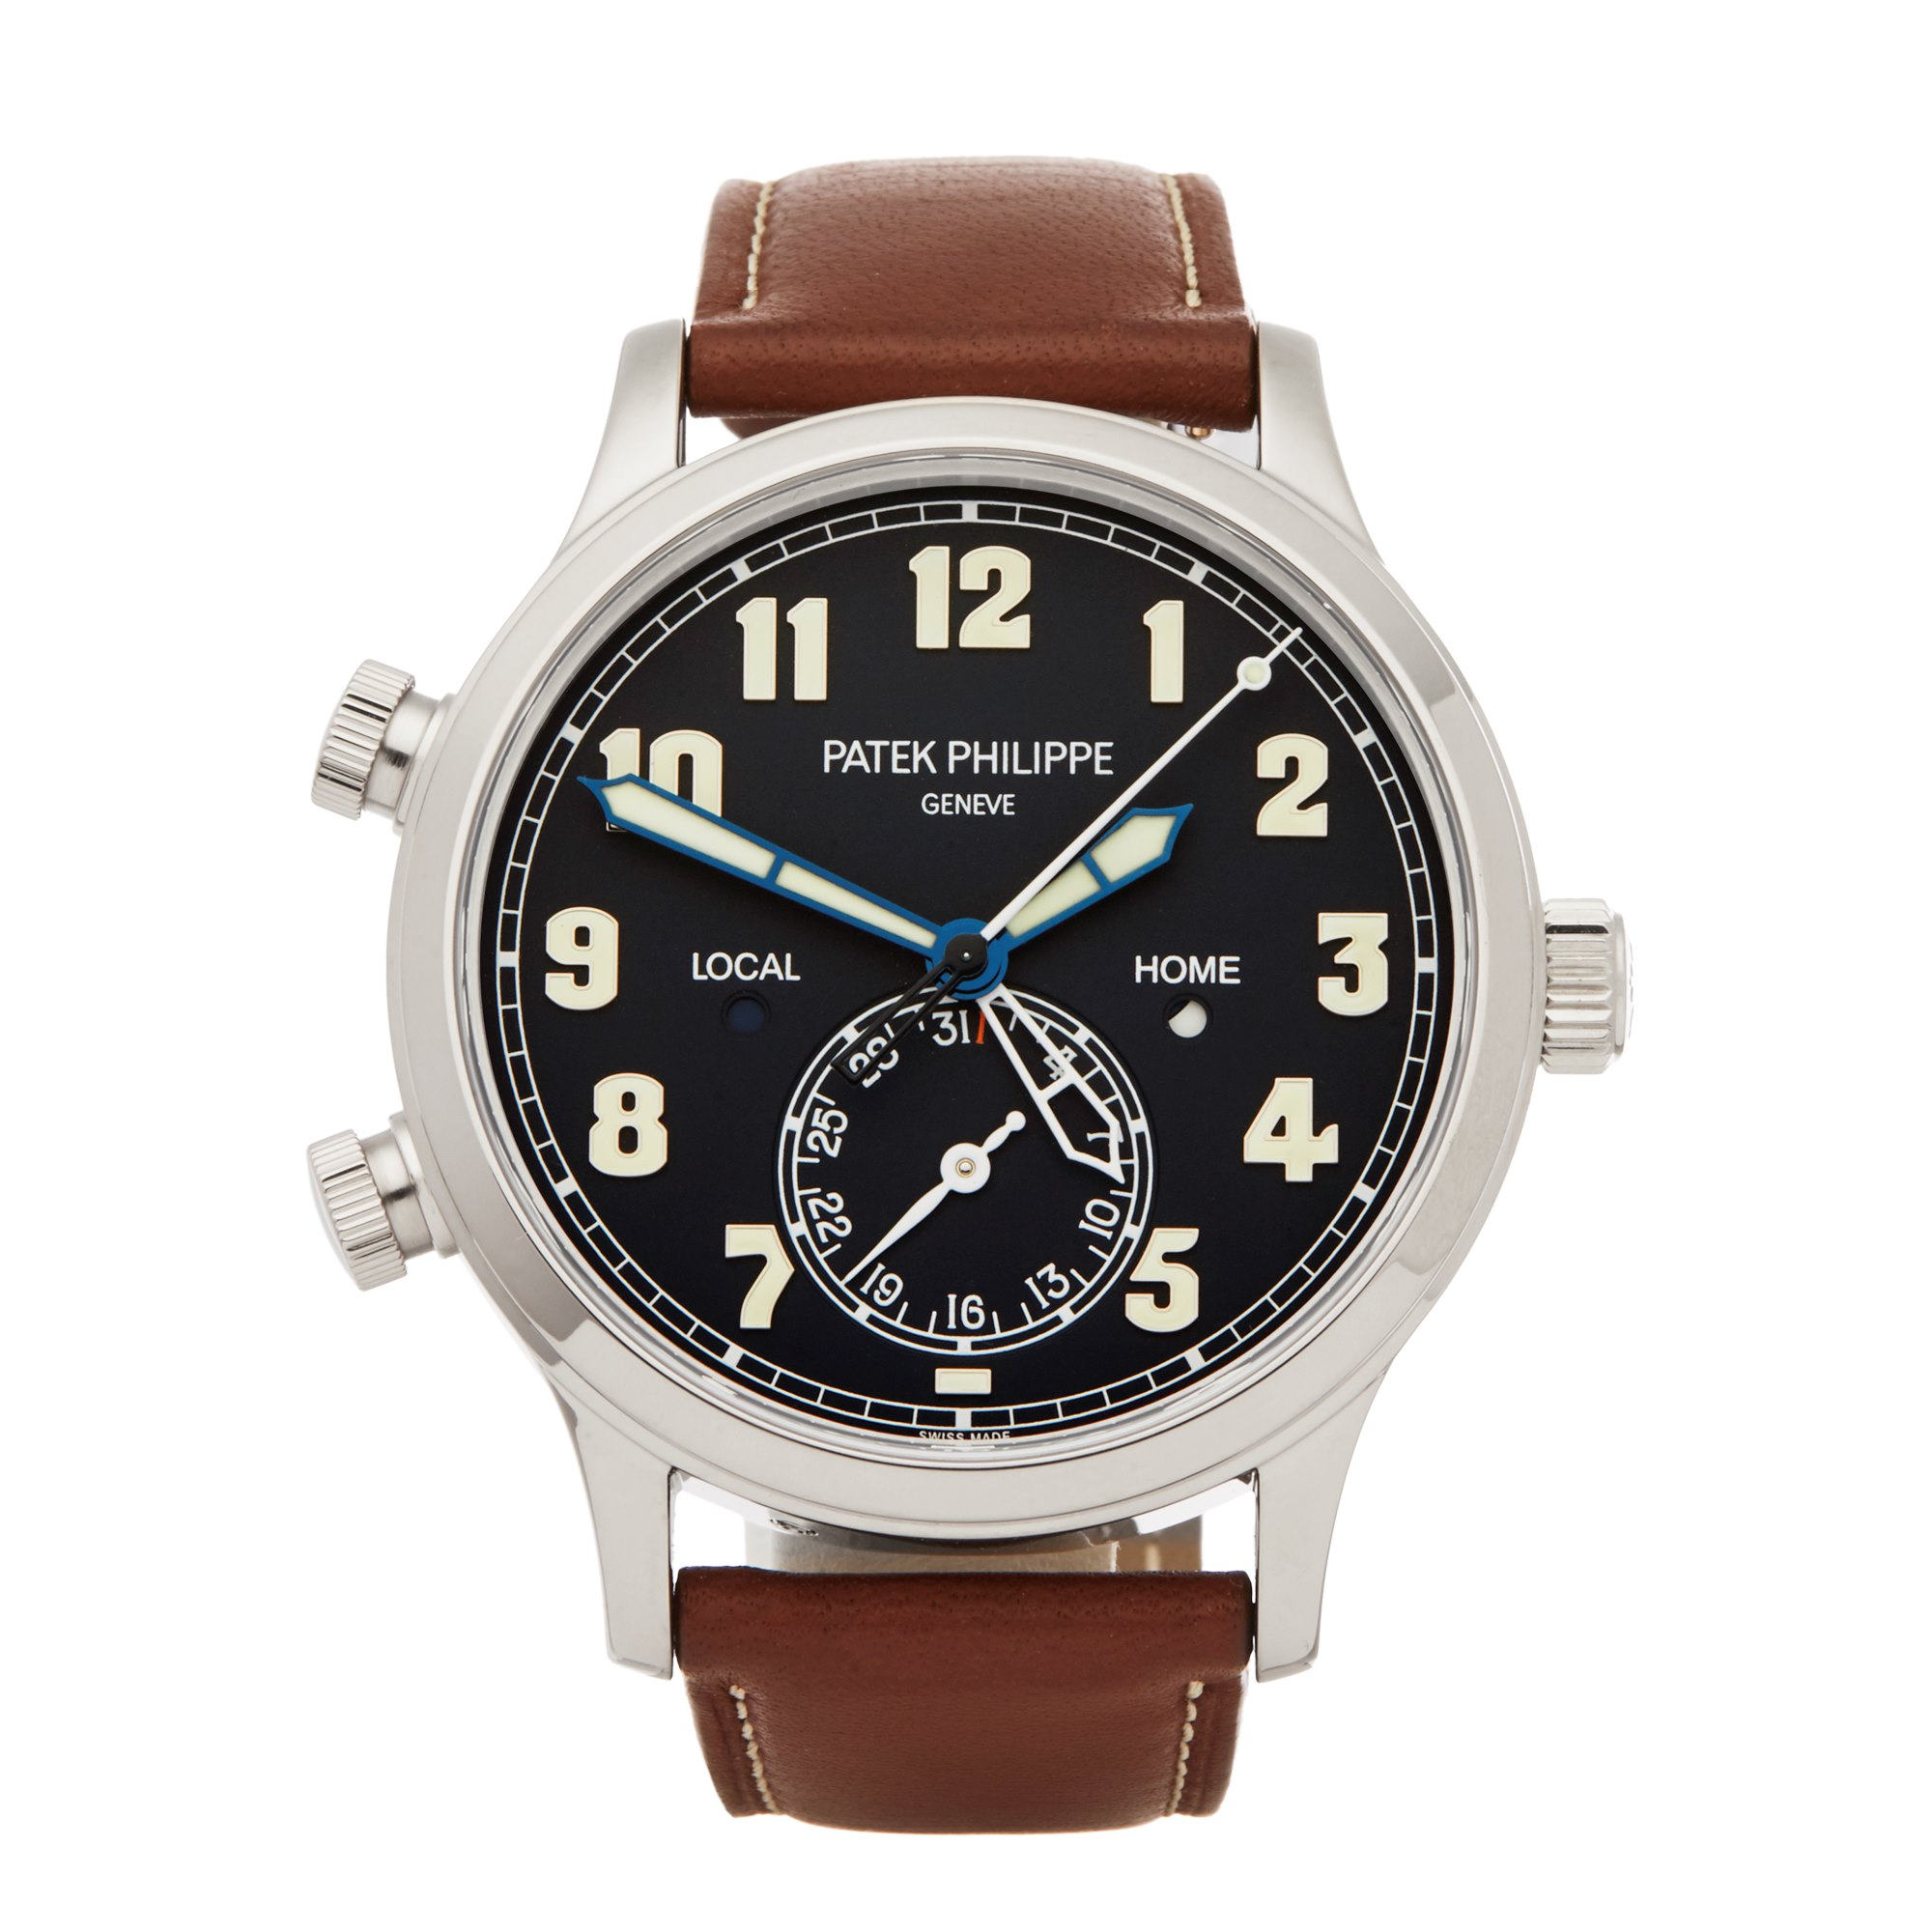 Lot 7 - Patek Philippe Calatrava Pilot Travel Time 5524G-001 Men White Gold Watch